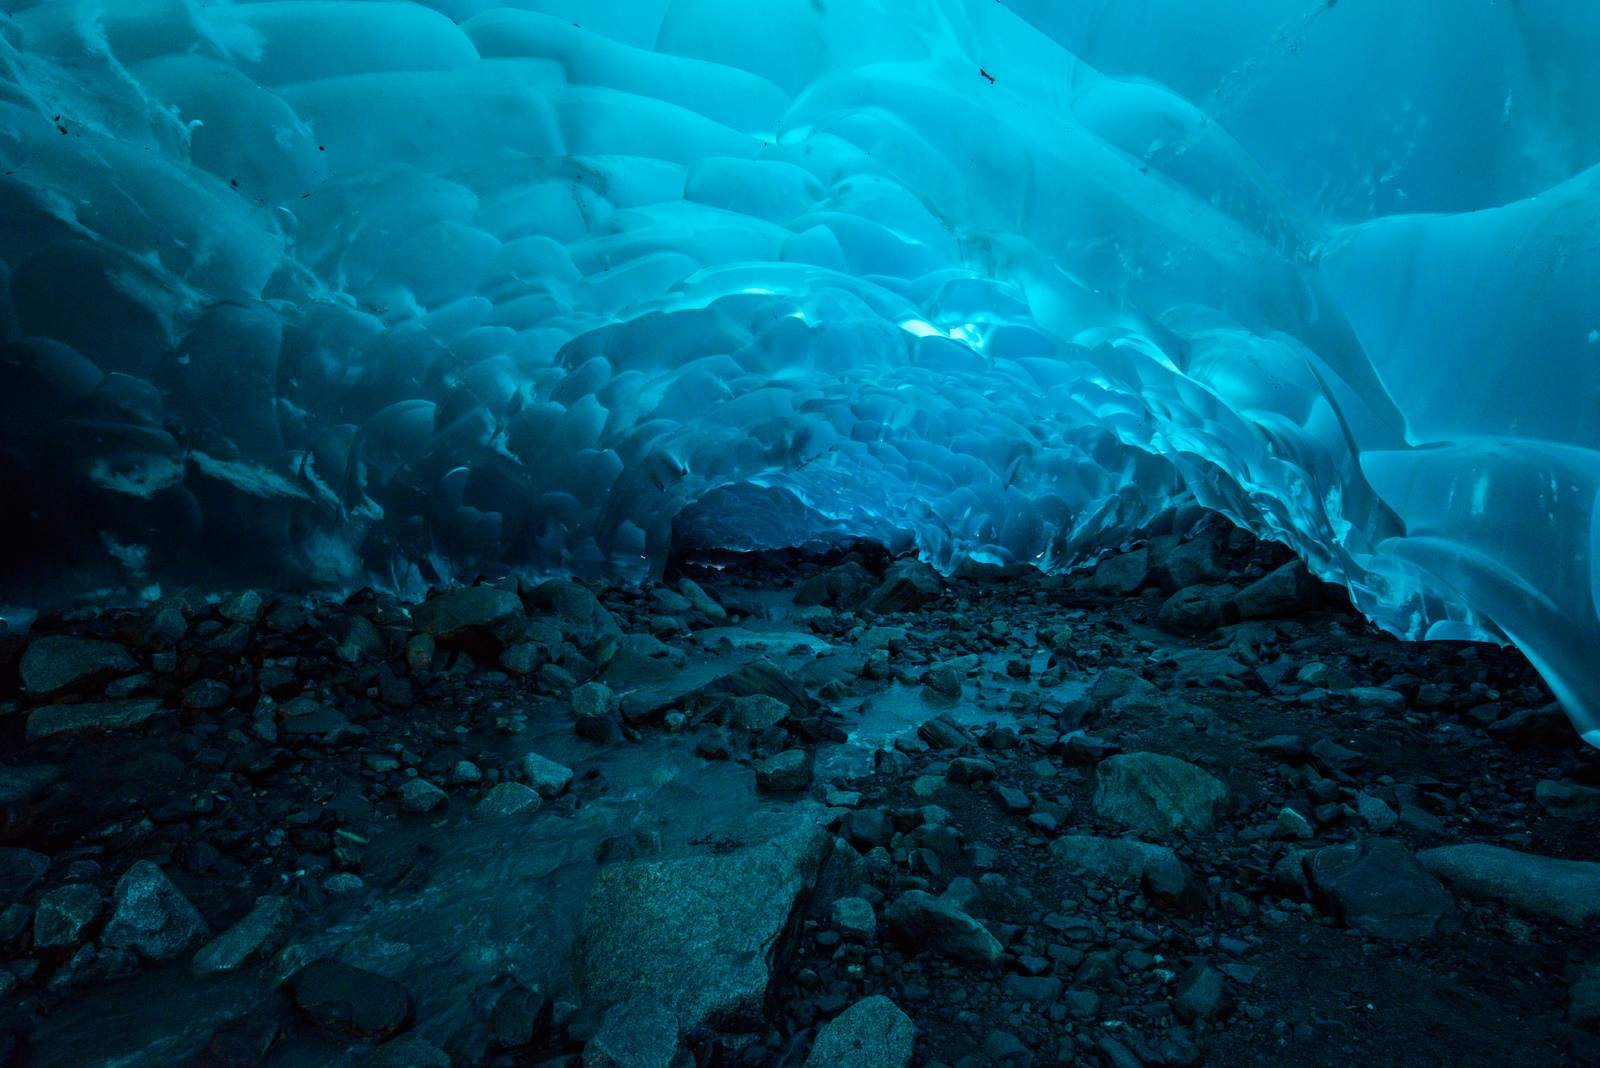 mendenhall2 Ice Caves under the Mendenhall Glacier in Juneau, Alaska